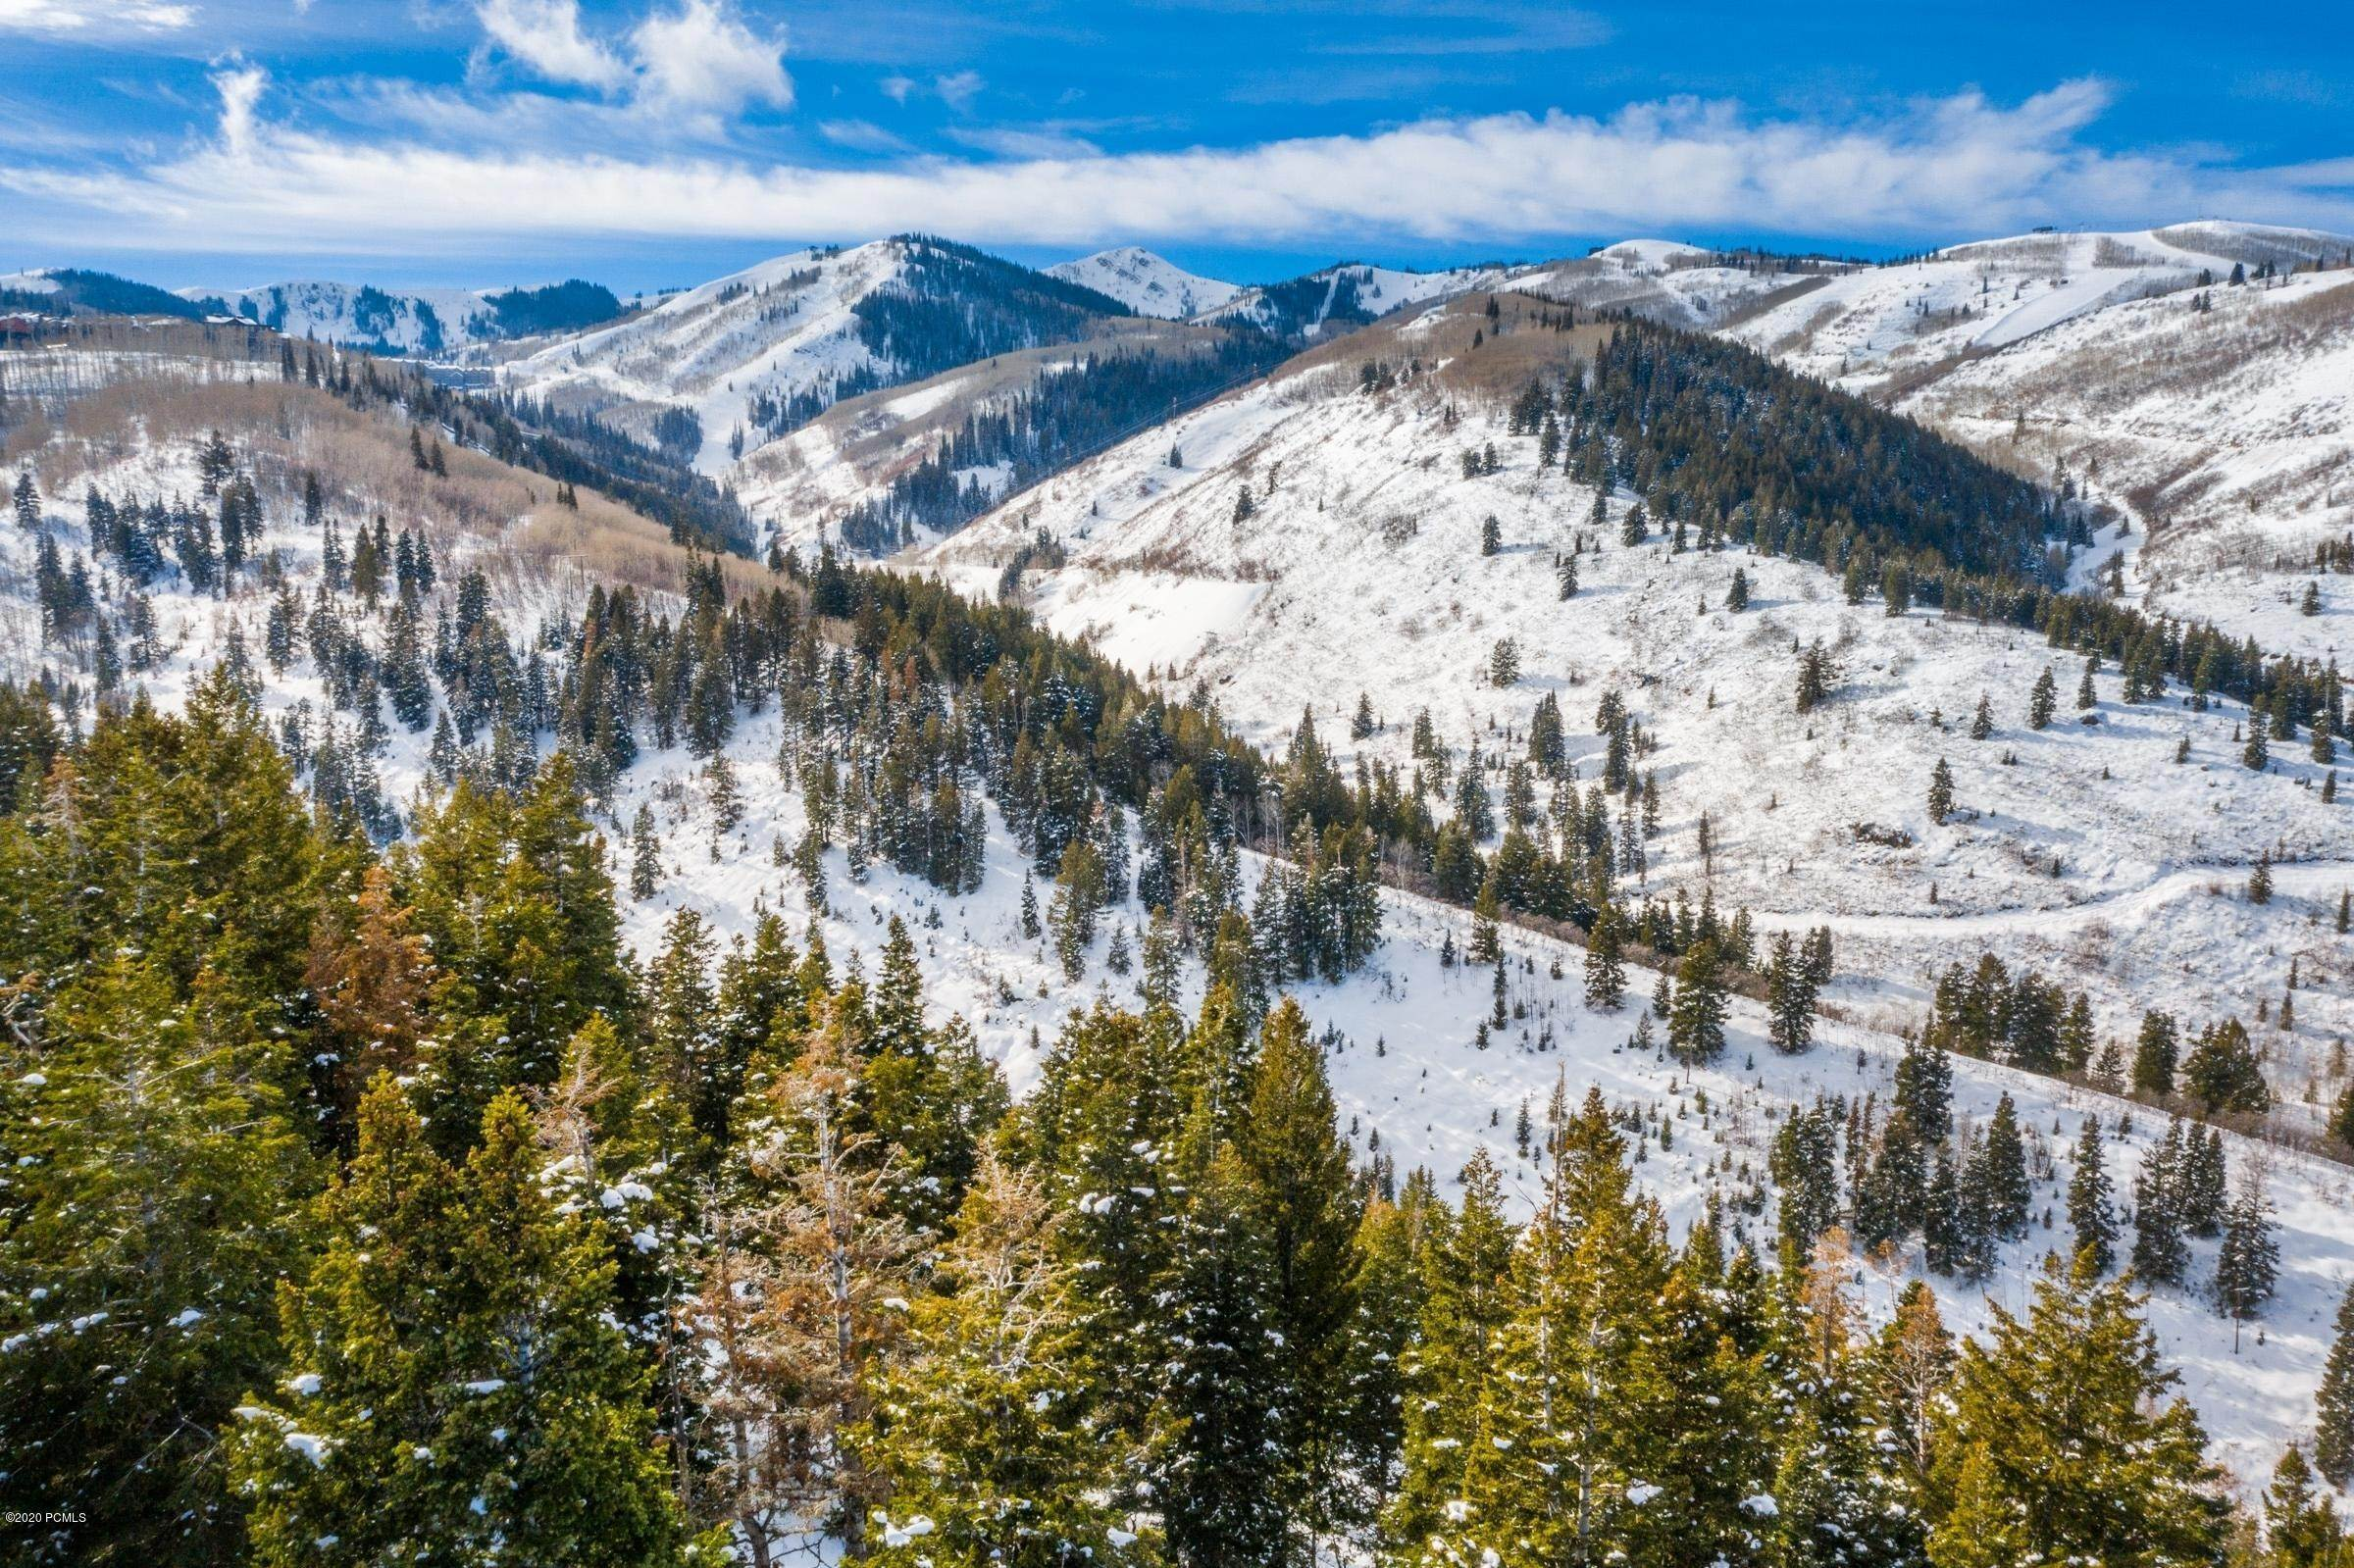 Residential Lots & Land for Sale at Park City, Utah United States